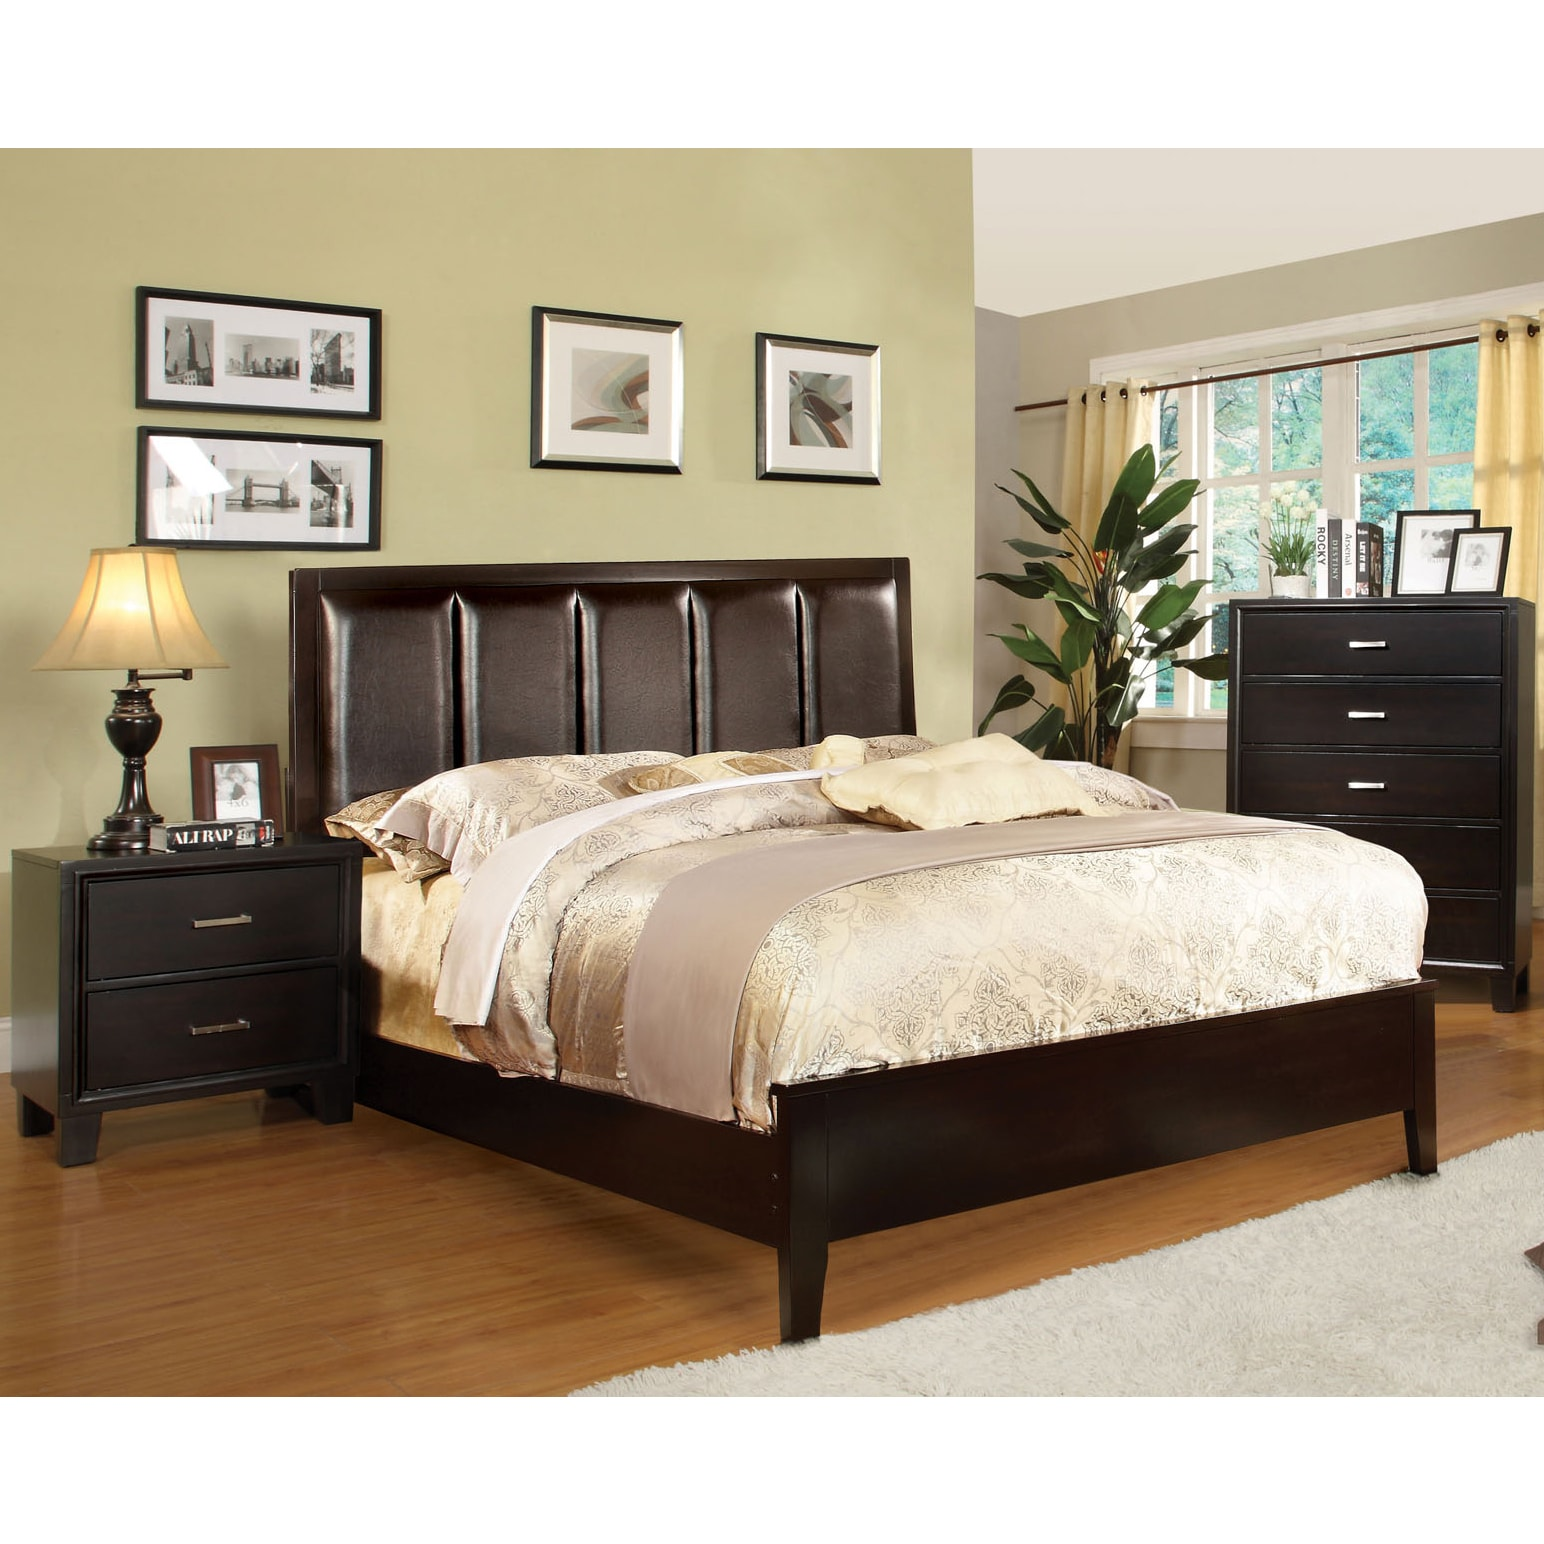 Shop furniture of america contemporary 2 piece leatherette bed with nightstand set free shipping today overstock com 9270109